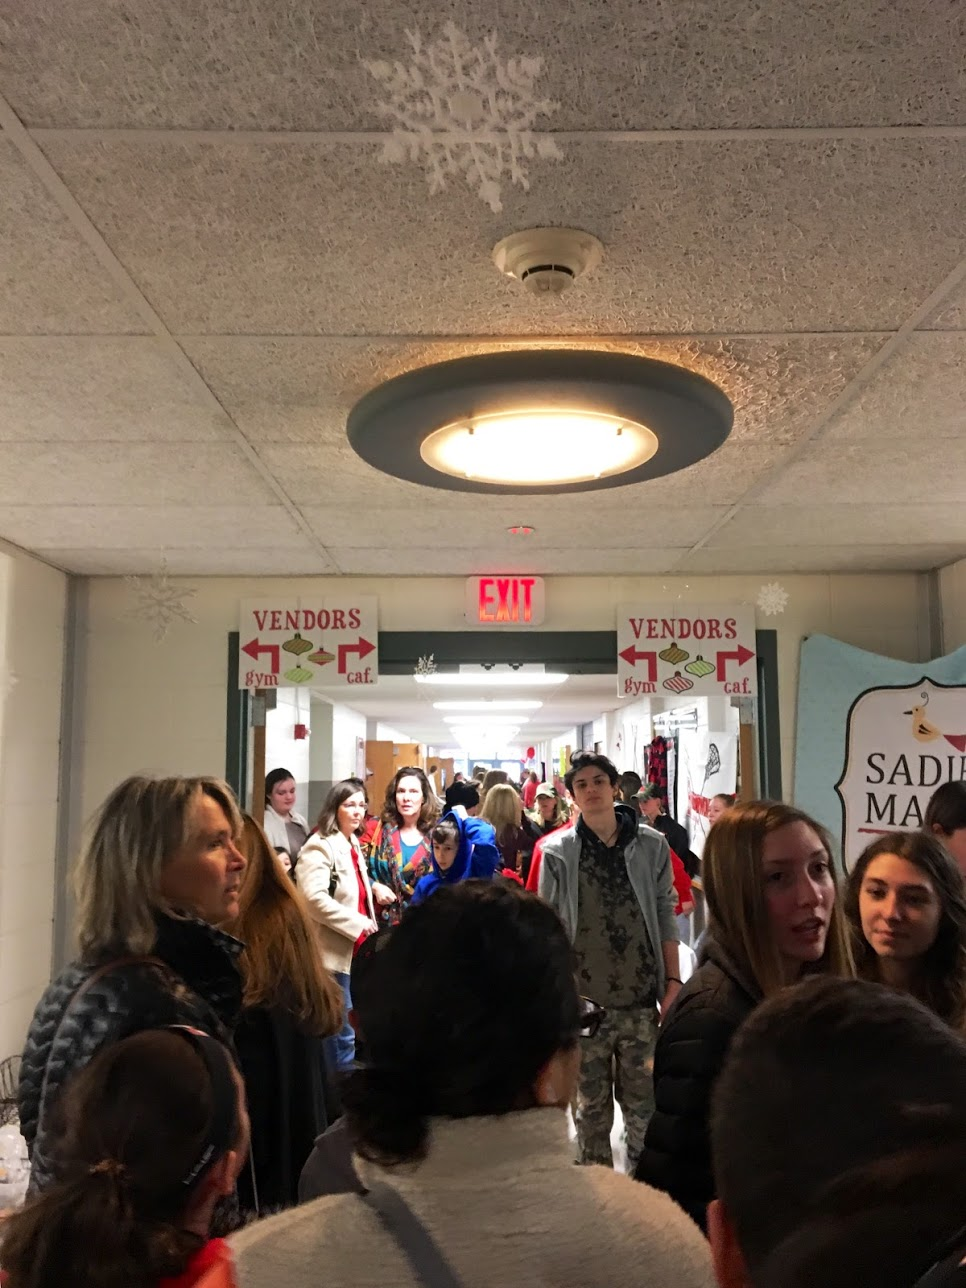 The crowed main hallway during the fair.